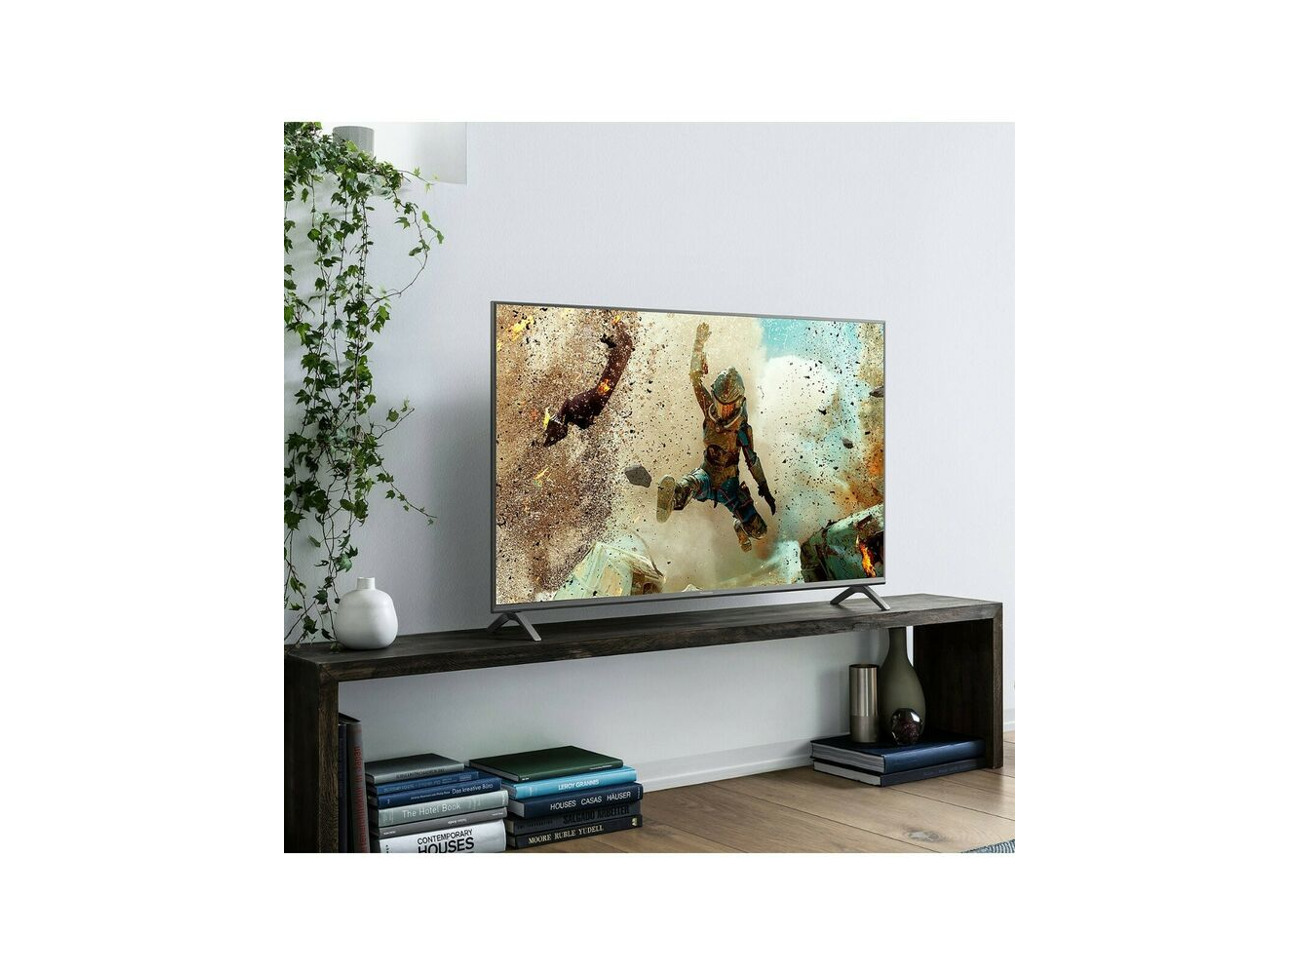 Panasonic TX-65FX700B 65 Inch LED HDR Smart 4K Ultra HD LED TV Freeview Play